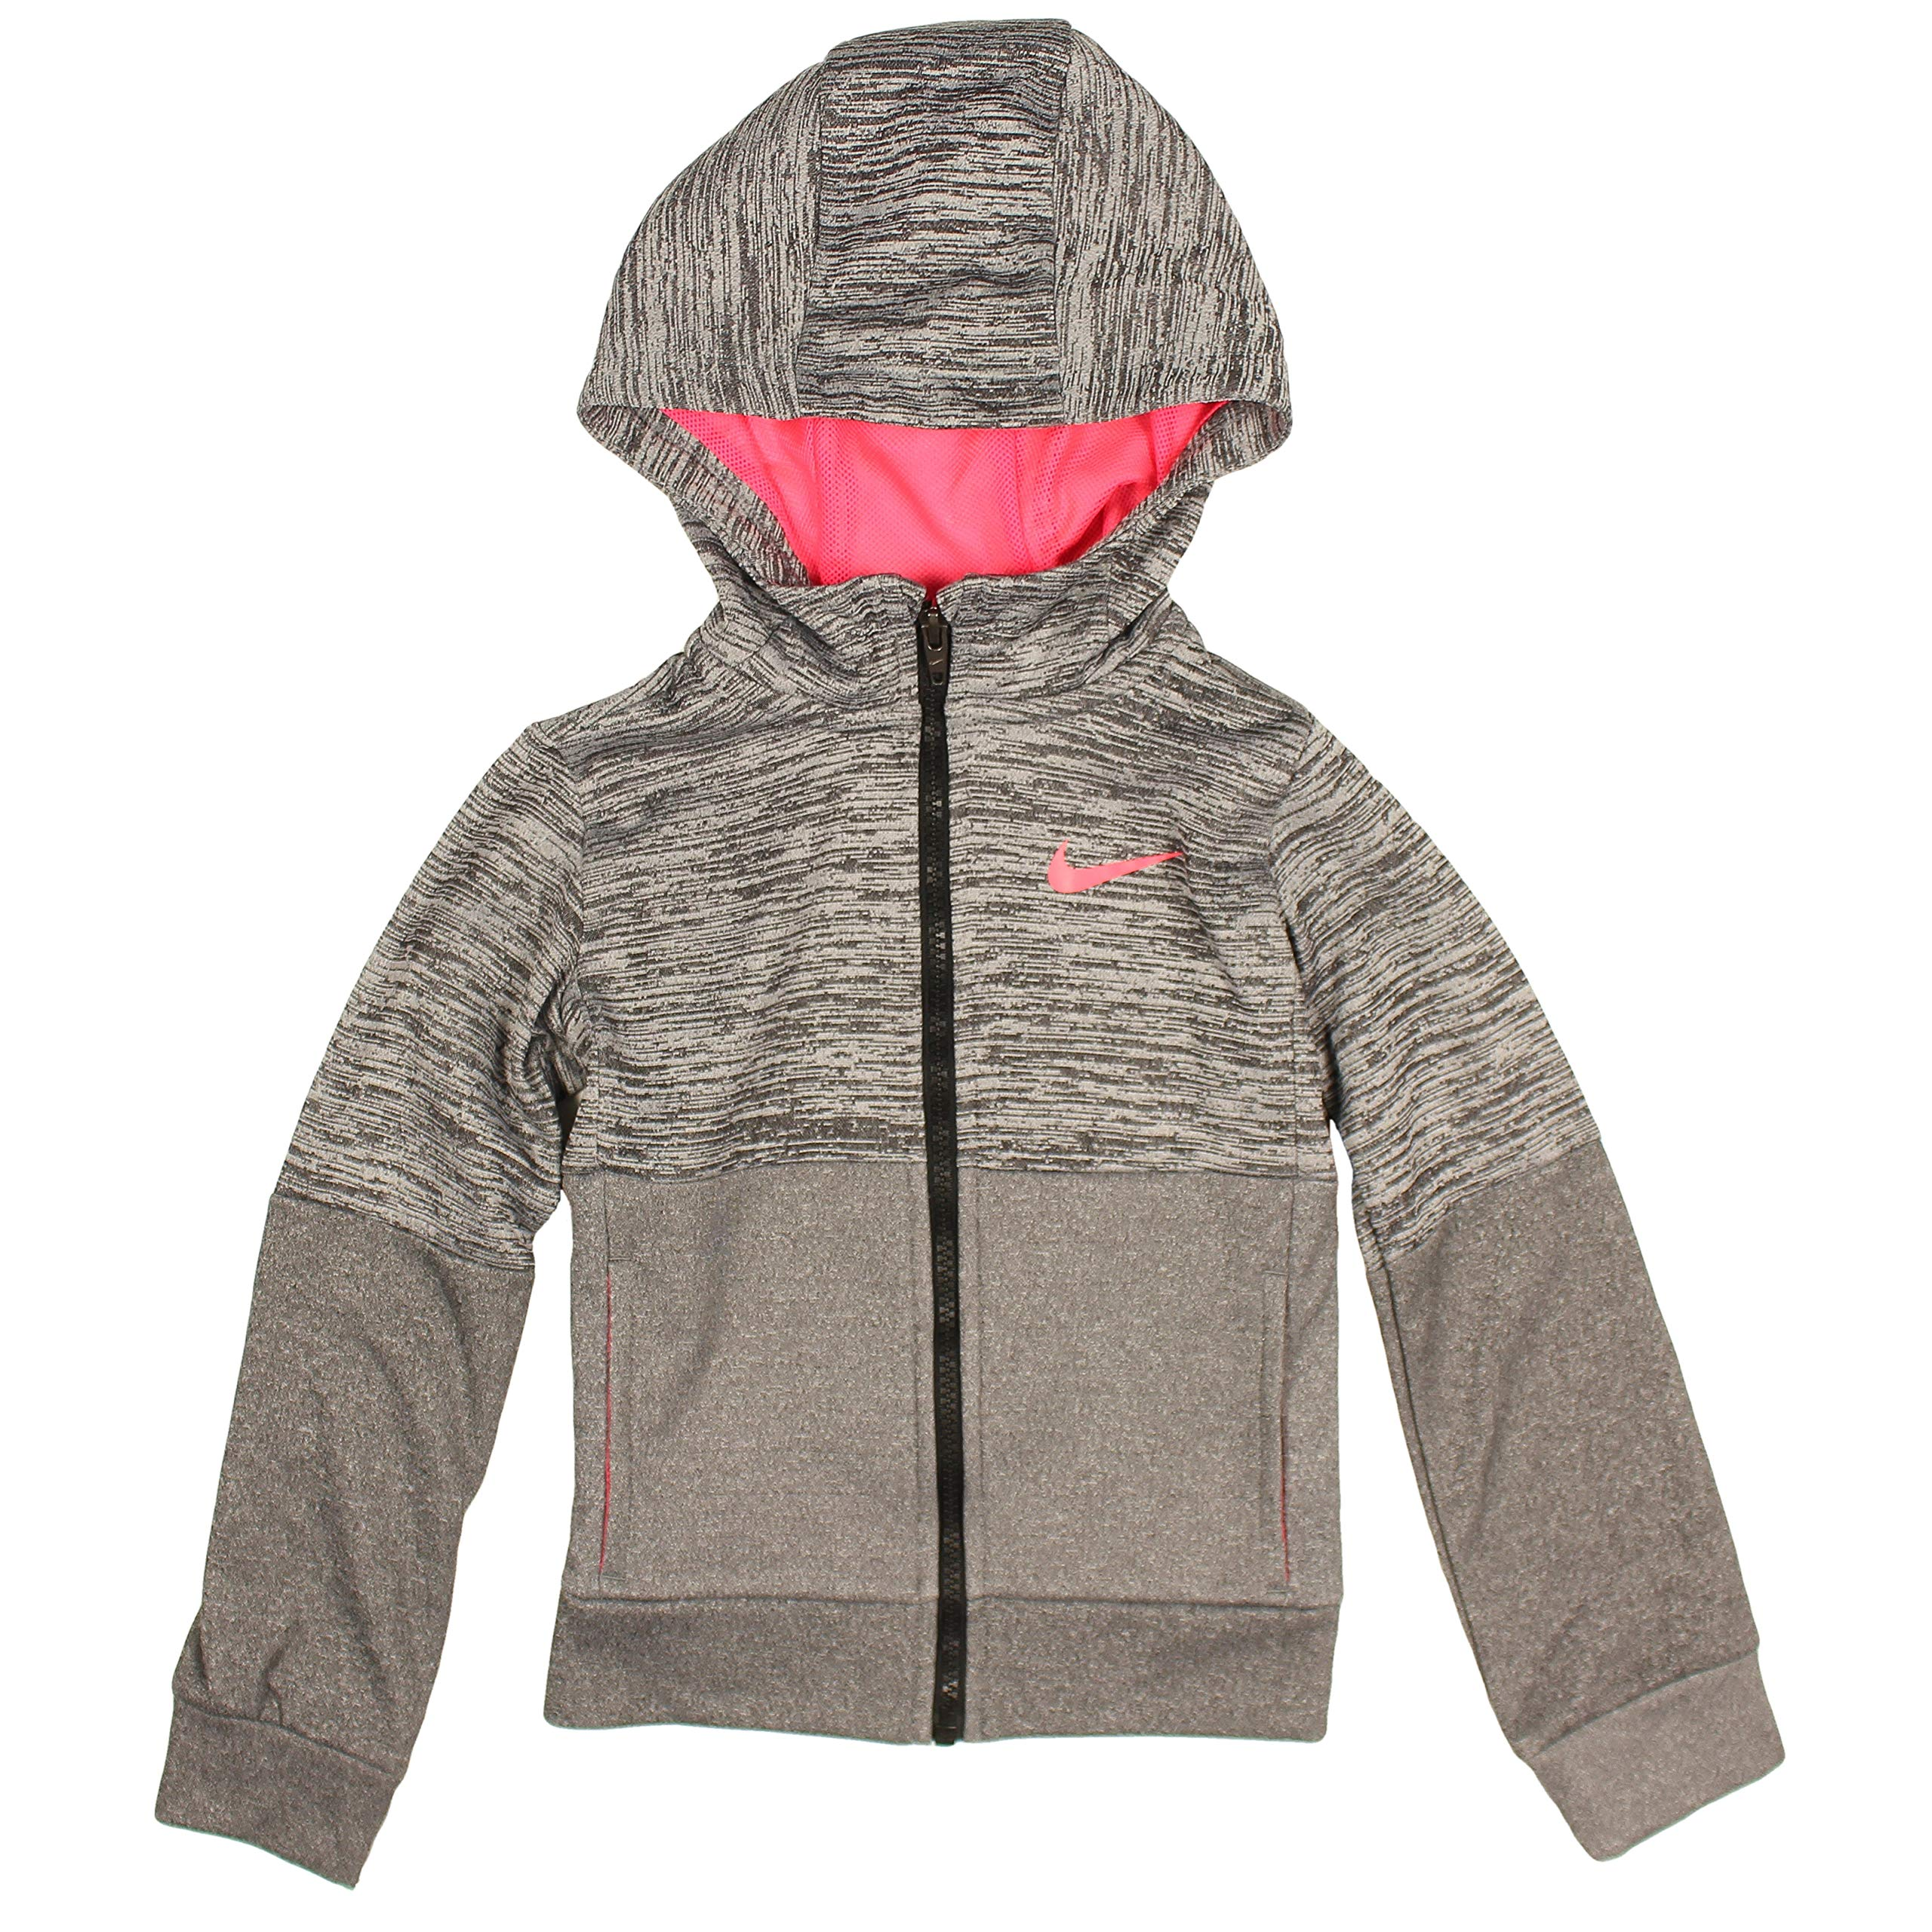 Nike Little Girls' Full Zip Dri-FIt Therma Hoodie (Gray/Neon Pink, 6) by Nike